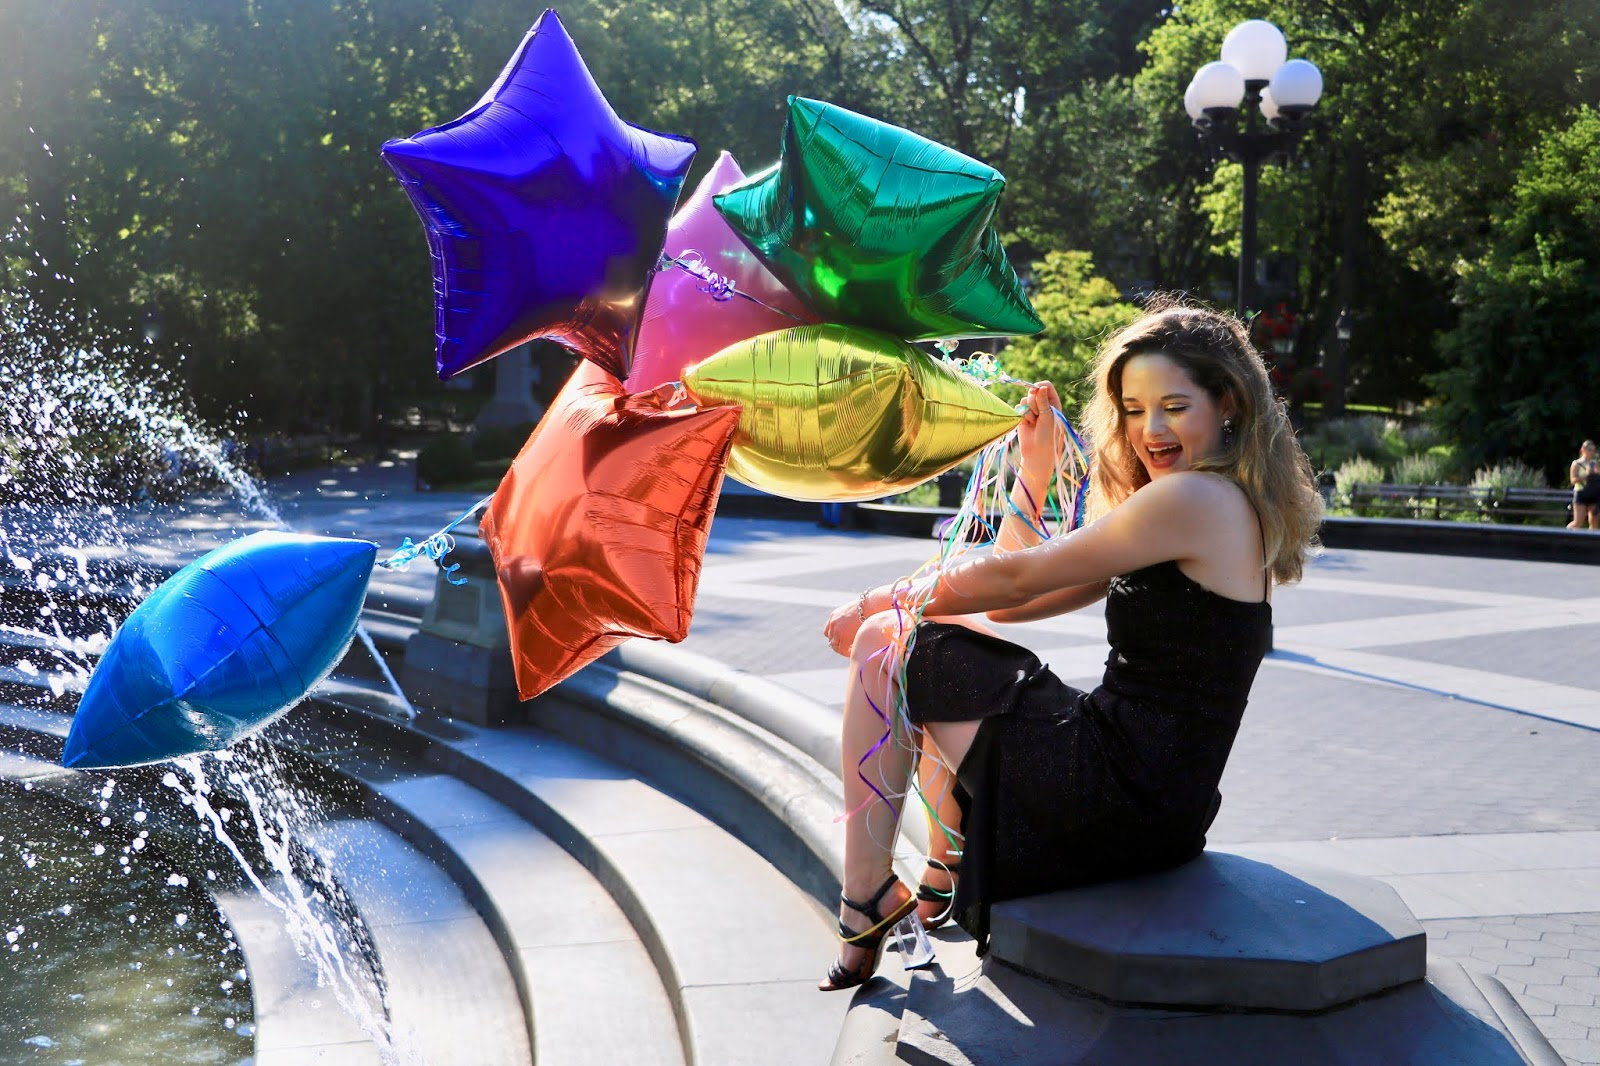 Nyc fashion blogger Kathleen Harper's photo shoot with star-shaped balloons.